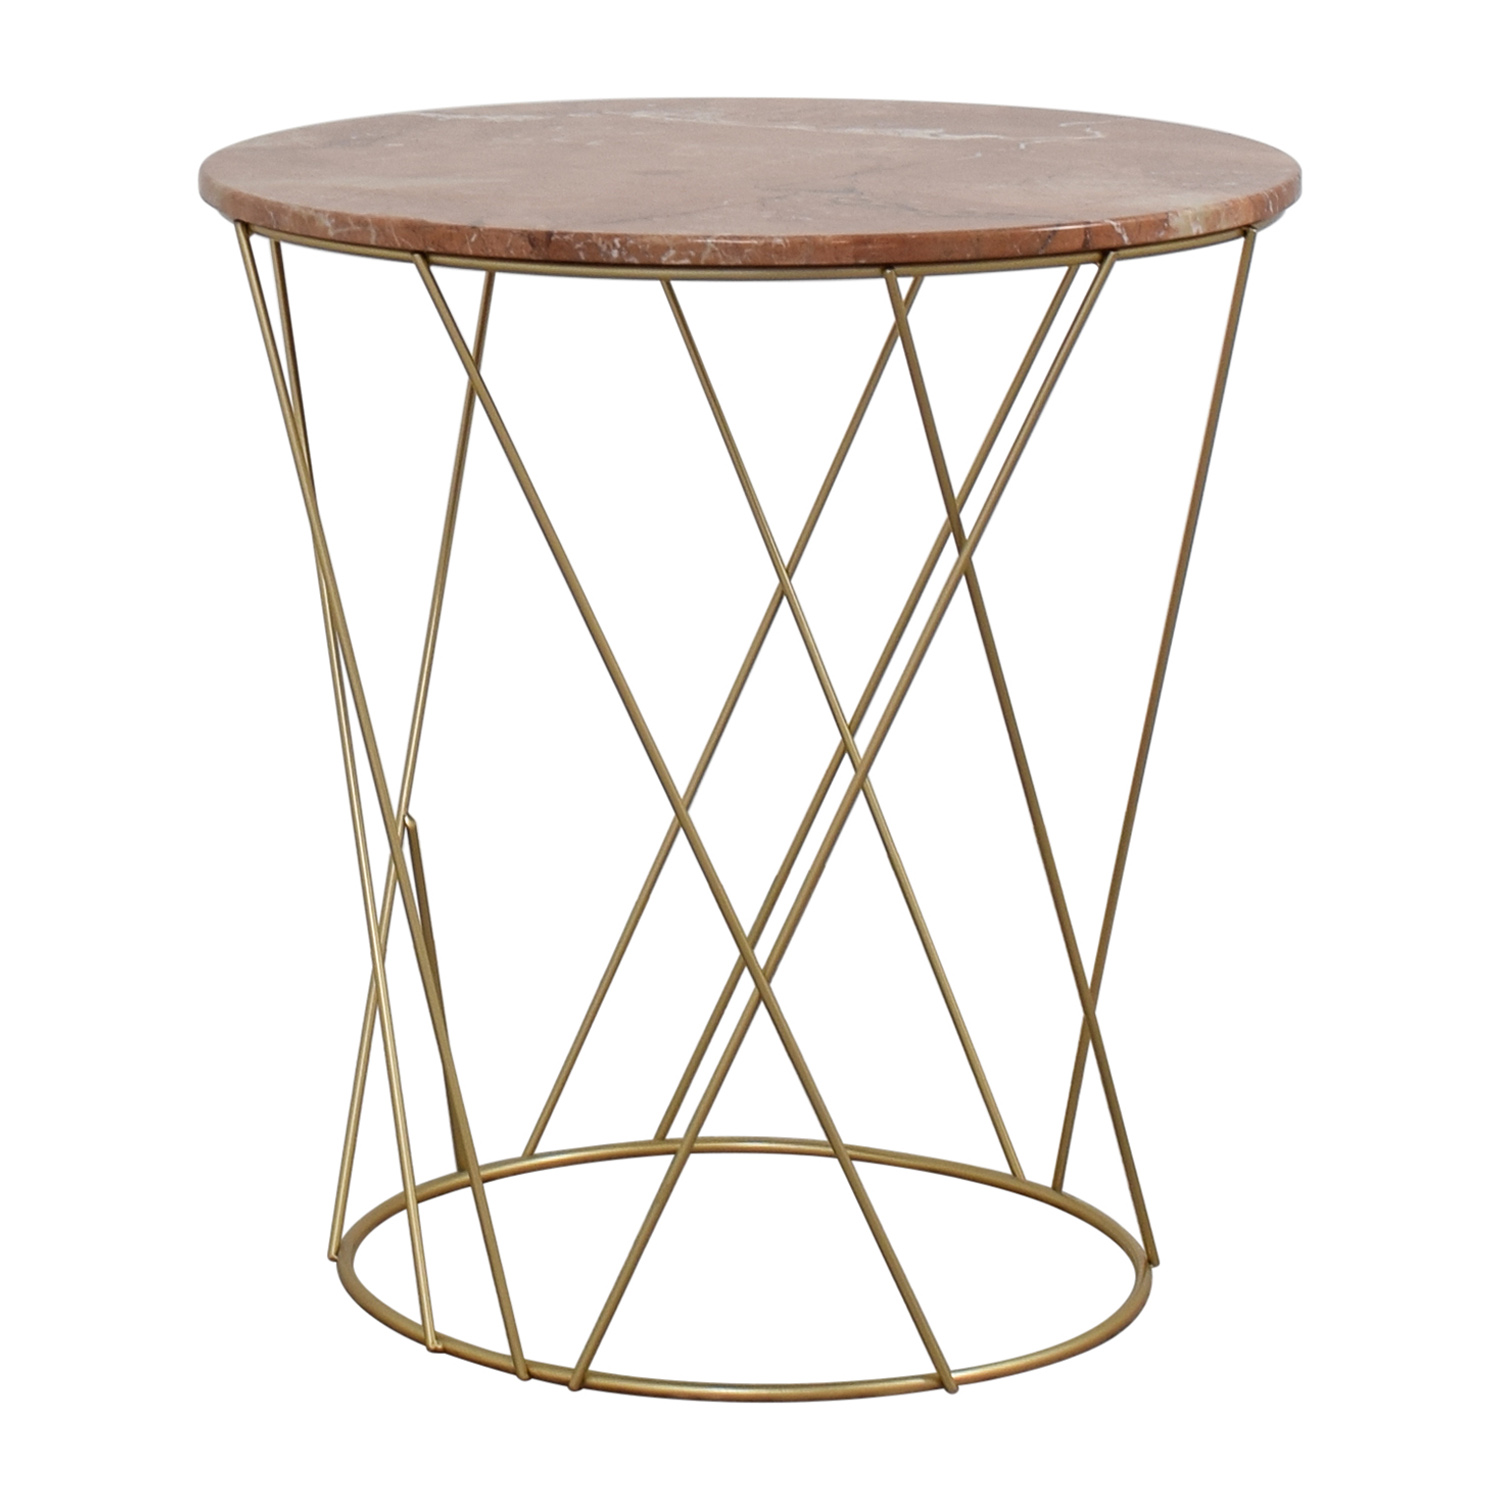 off lotus pink gold round marble table tables second hand metal accent narrow shelf behind couch pier one nesting bronze patio side small blue black cube outdoor furniture